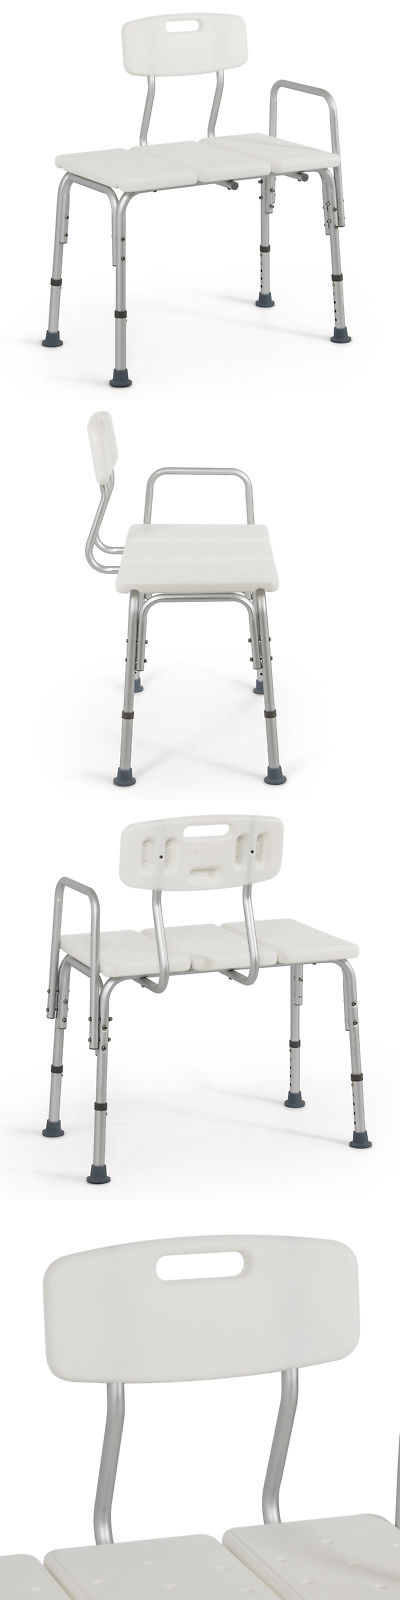 Transfer Boards and Benches: Medical Shower Chair Height Adjustable ...